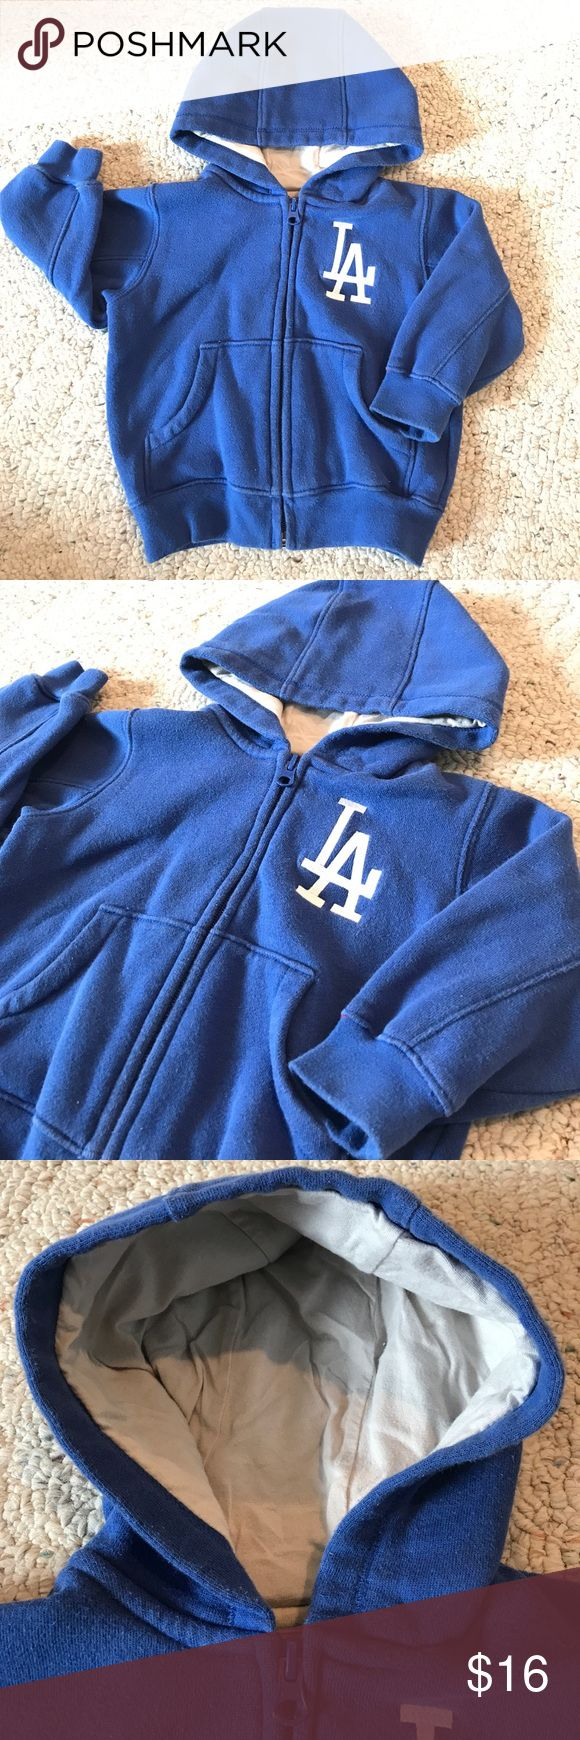 ⚾️ LA Dodgers Toddler Hoodie Jacket ⚾️ Soft and warm with a jersey-lined hood. This jacket is in good condition with no holes or stains. Slight fading from washing, but is ready for your little one! Comes from a smoke and pet-free home. 🌺 Make an Offer or Bundle & Save 🌺 Shirts & Tops Sweatshirts & Hoodies